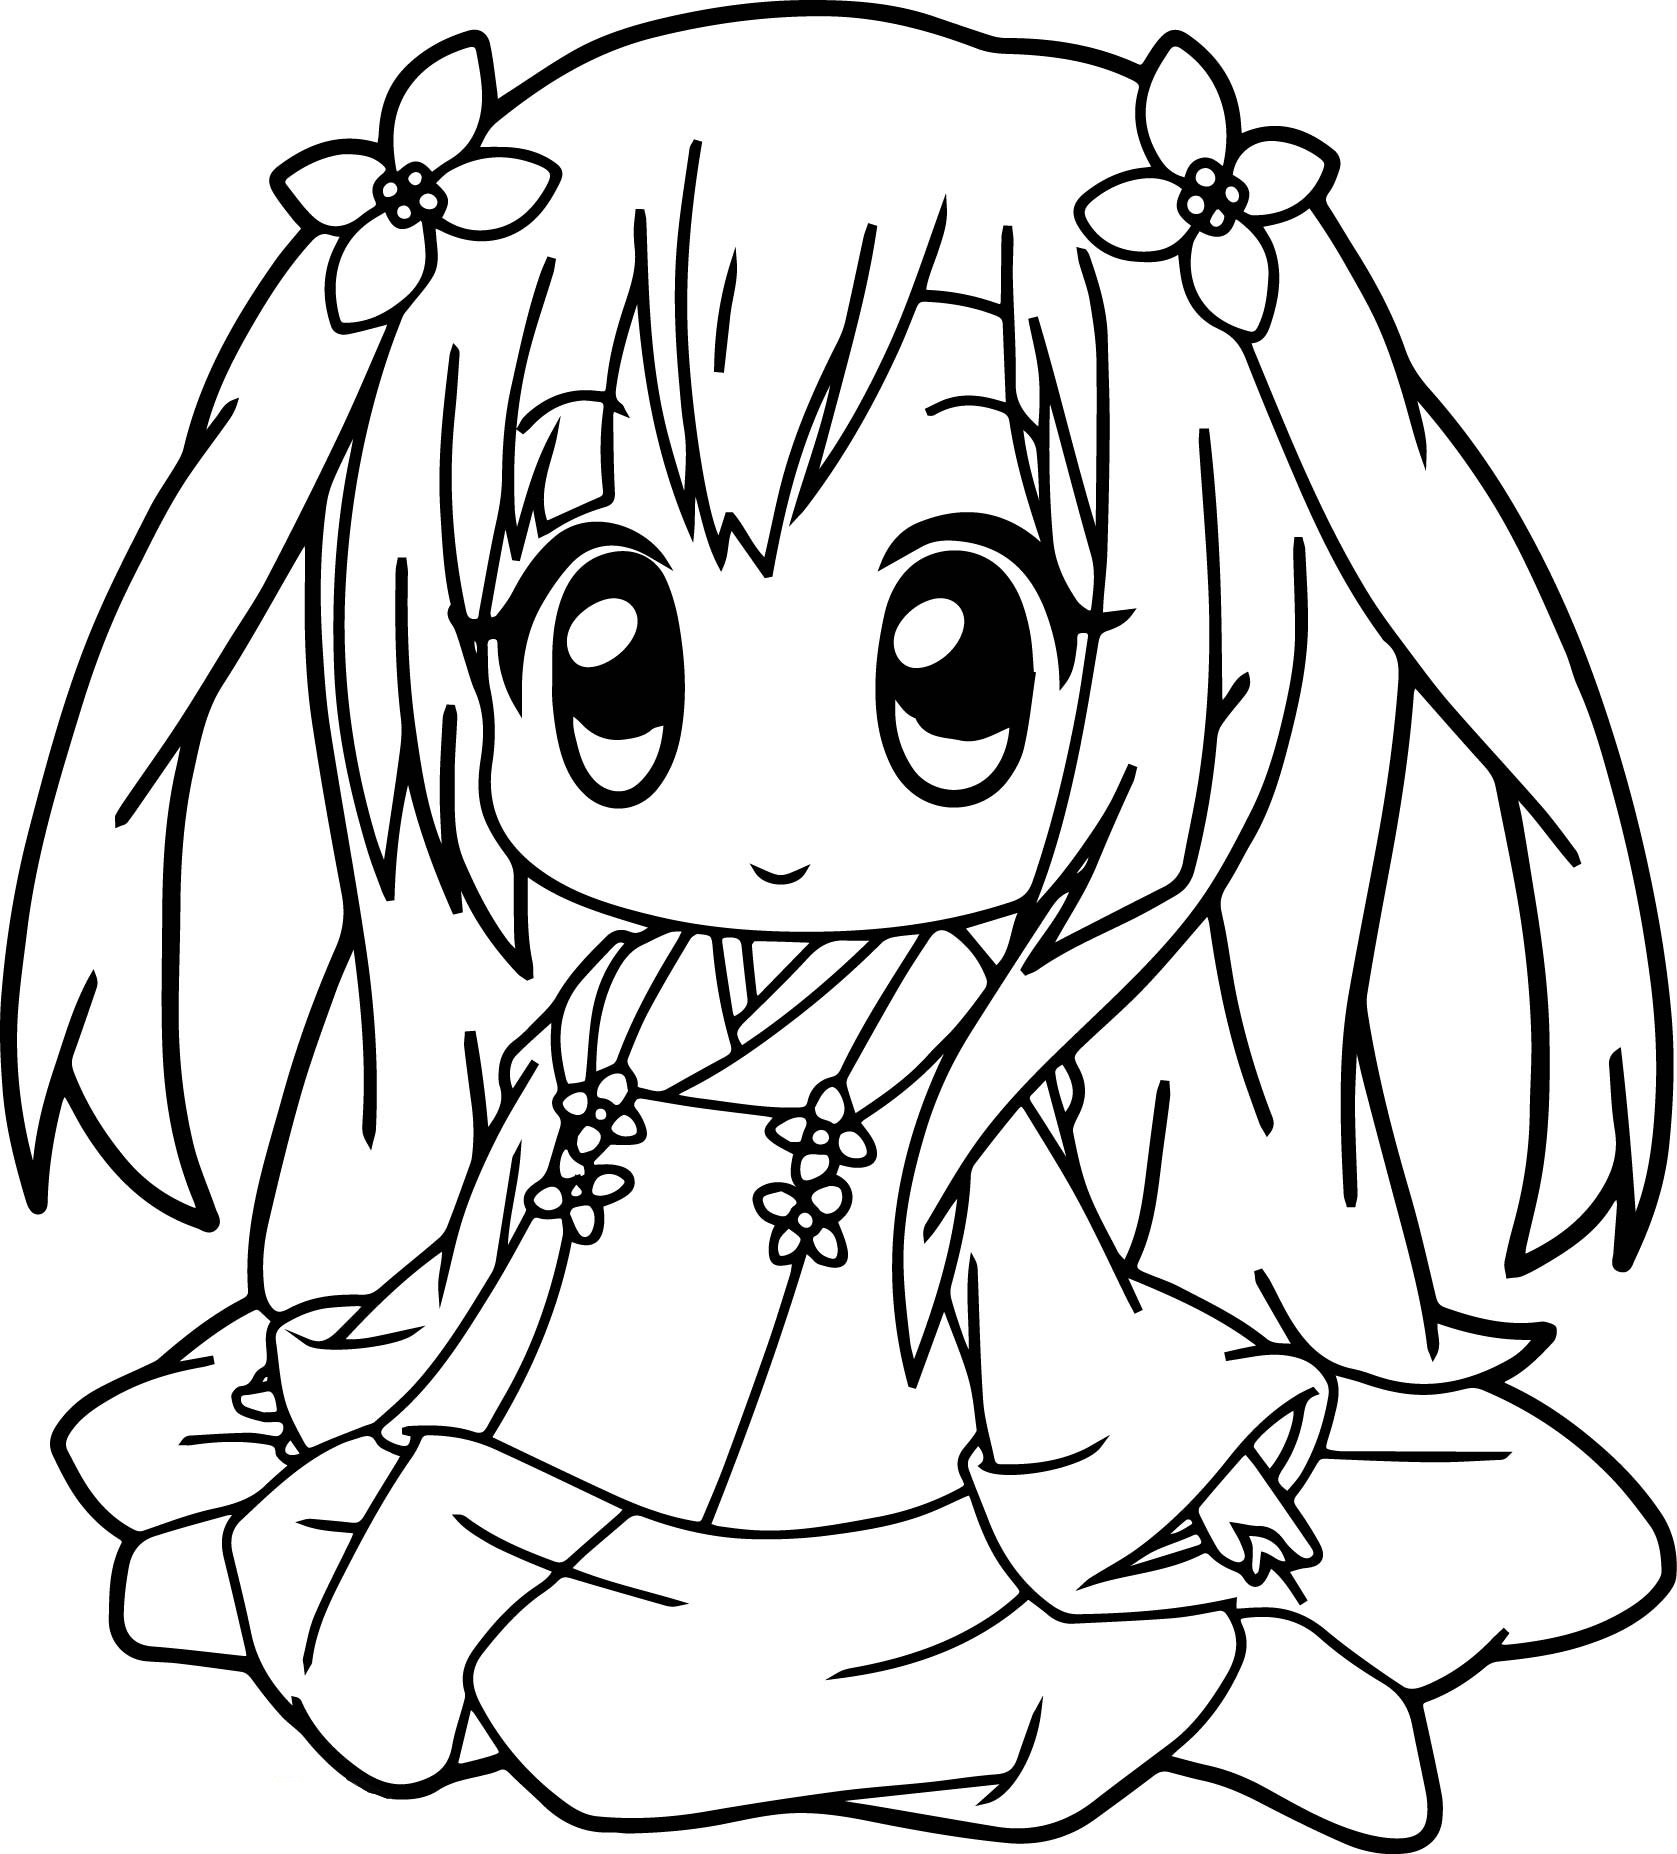 anime girl coloring pages printable coloring pages for girls pdf at getcoloringscom free pages anime girl printable coloring